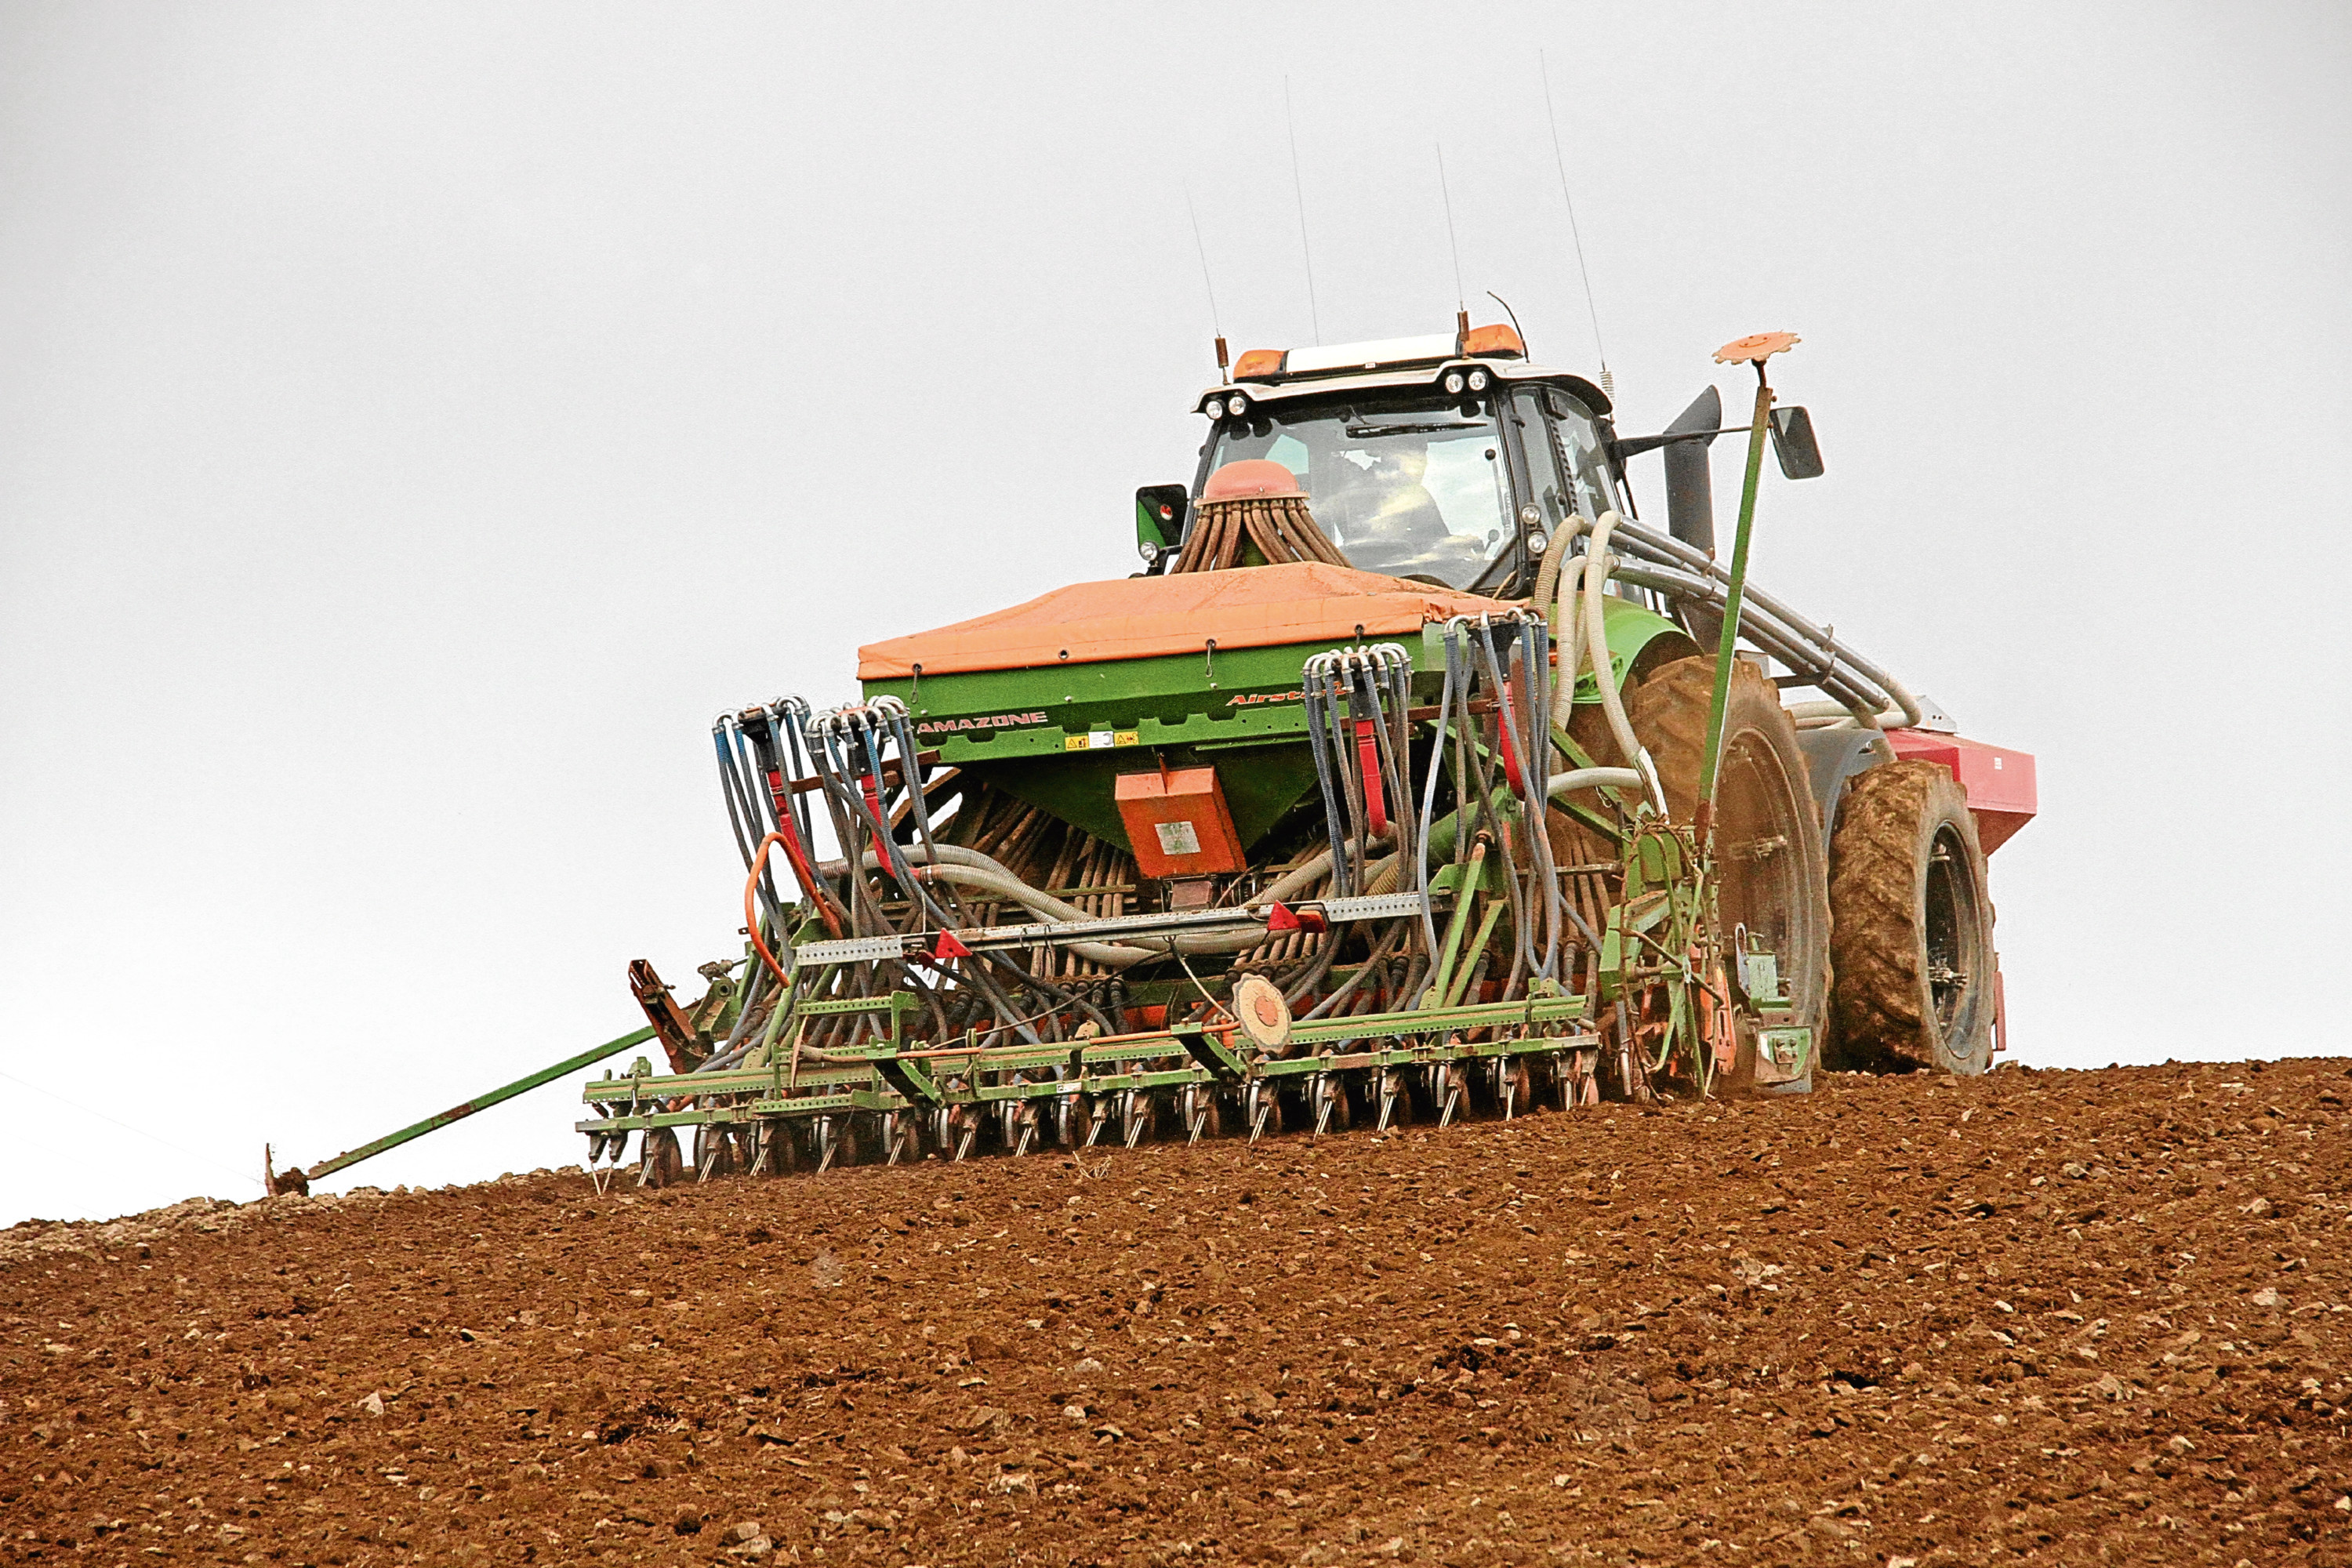 The rule changes will impact farmers' planting plans.